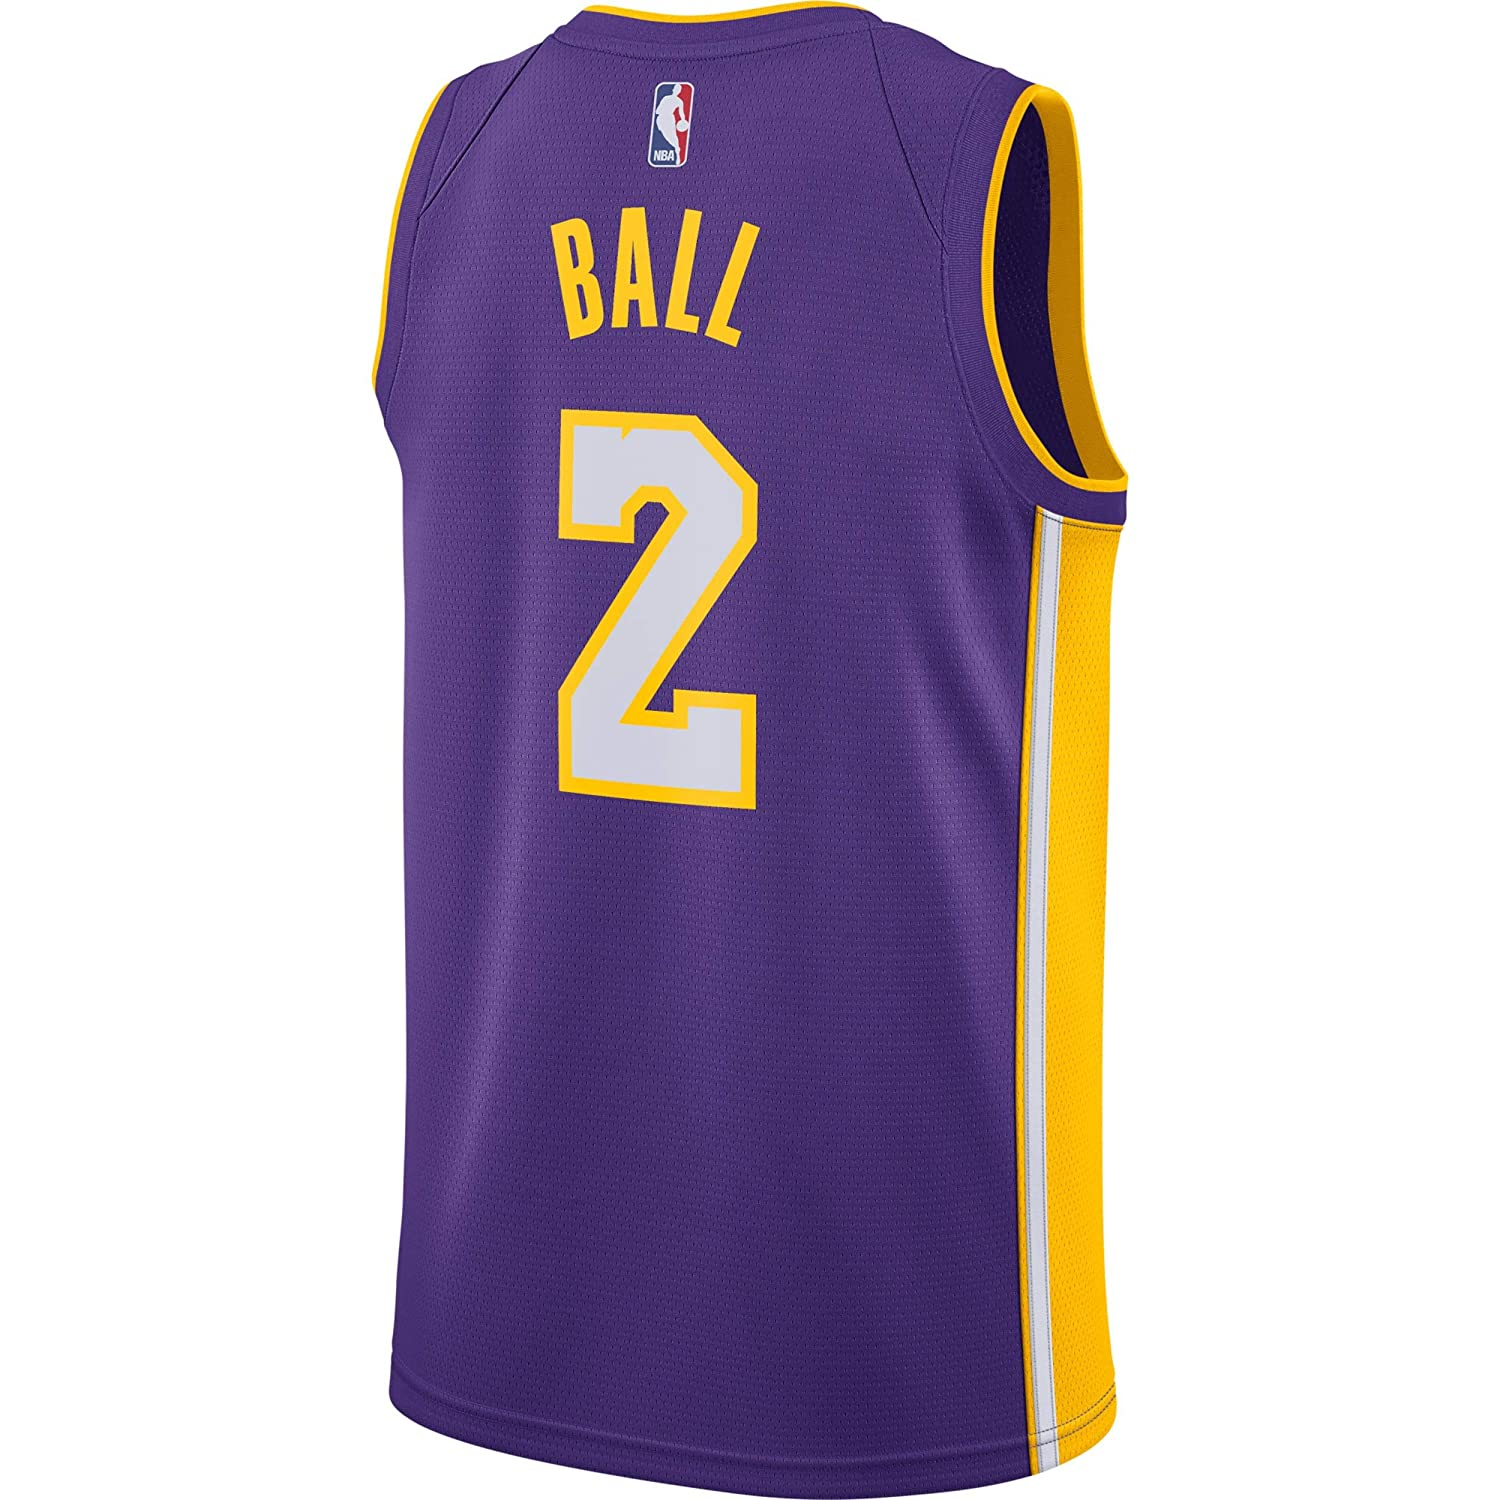 Nike NBA Los Angeles Lakers Lonzo Ball 2 2017 2018 Icon Edition Jersey Official Kobe Bryant, Camiseta de Niño: Amazon.es: Ropa y accesorios